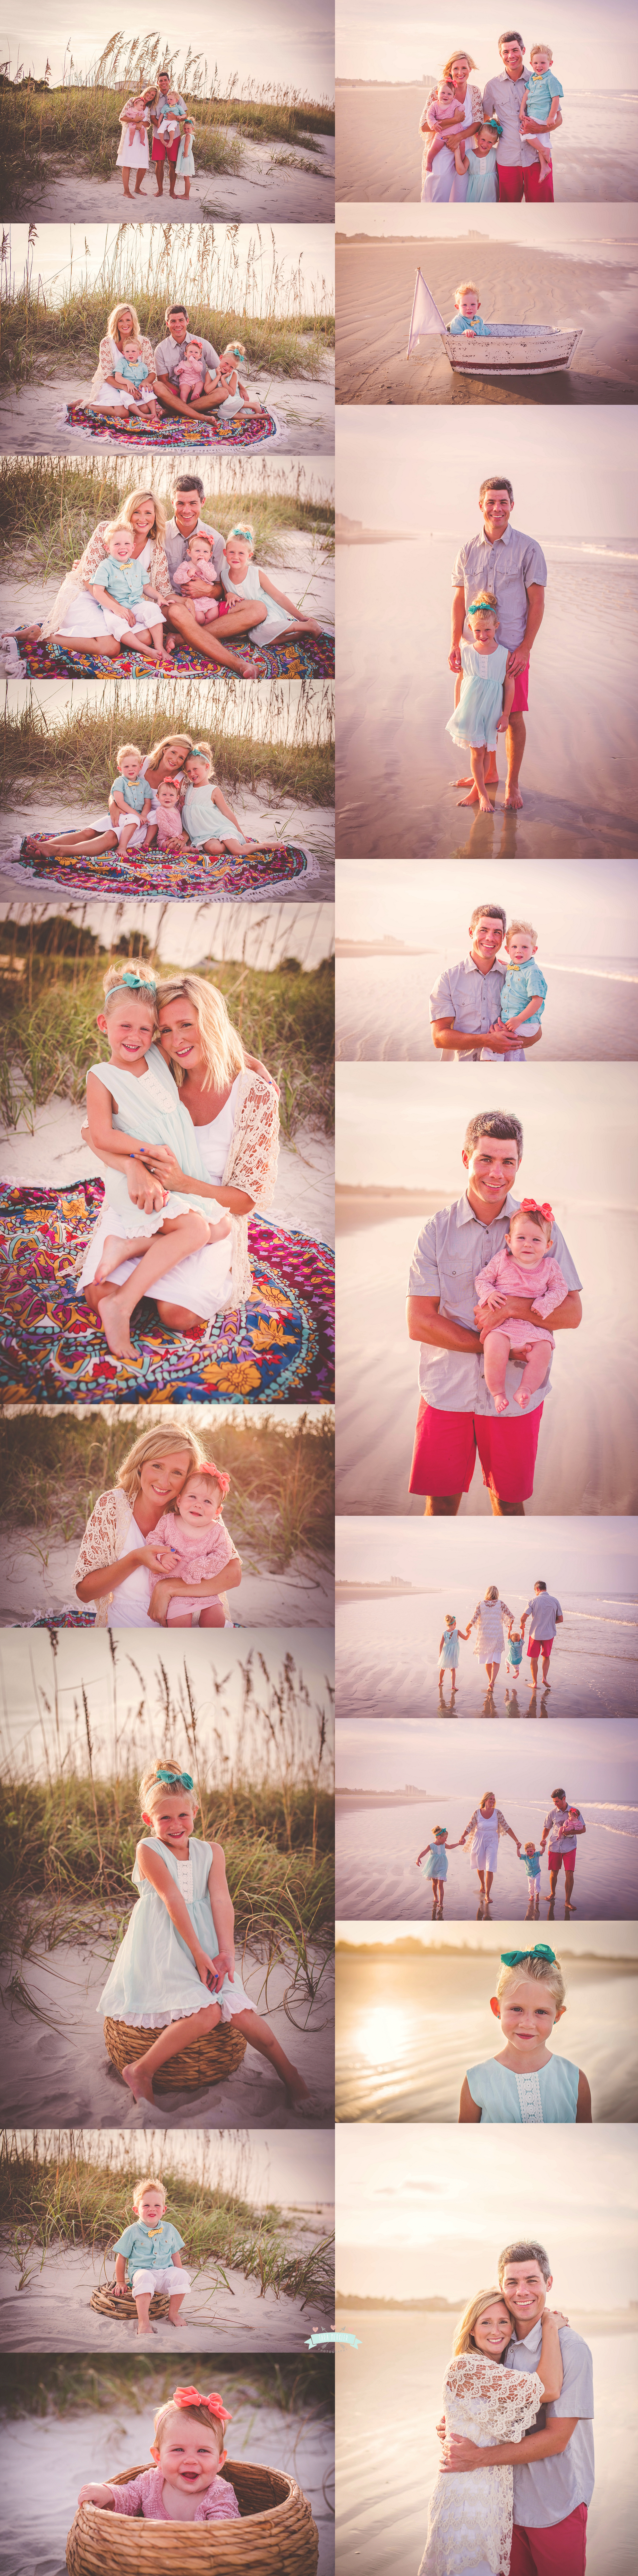 Gurrini Family Beach Session August 2015 Tara Merkler Photography-6_WEB.jpg